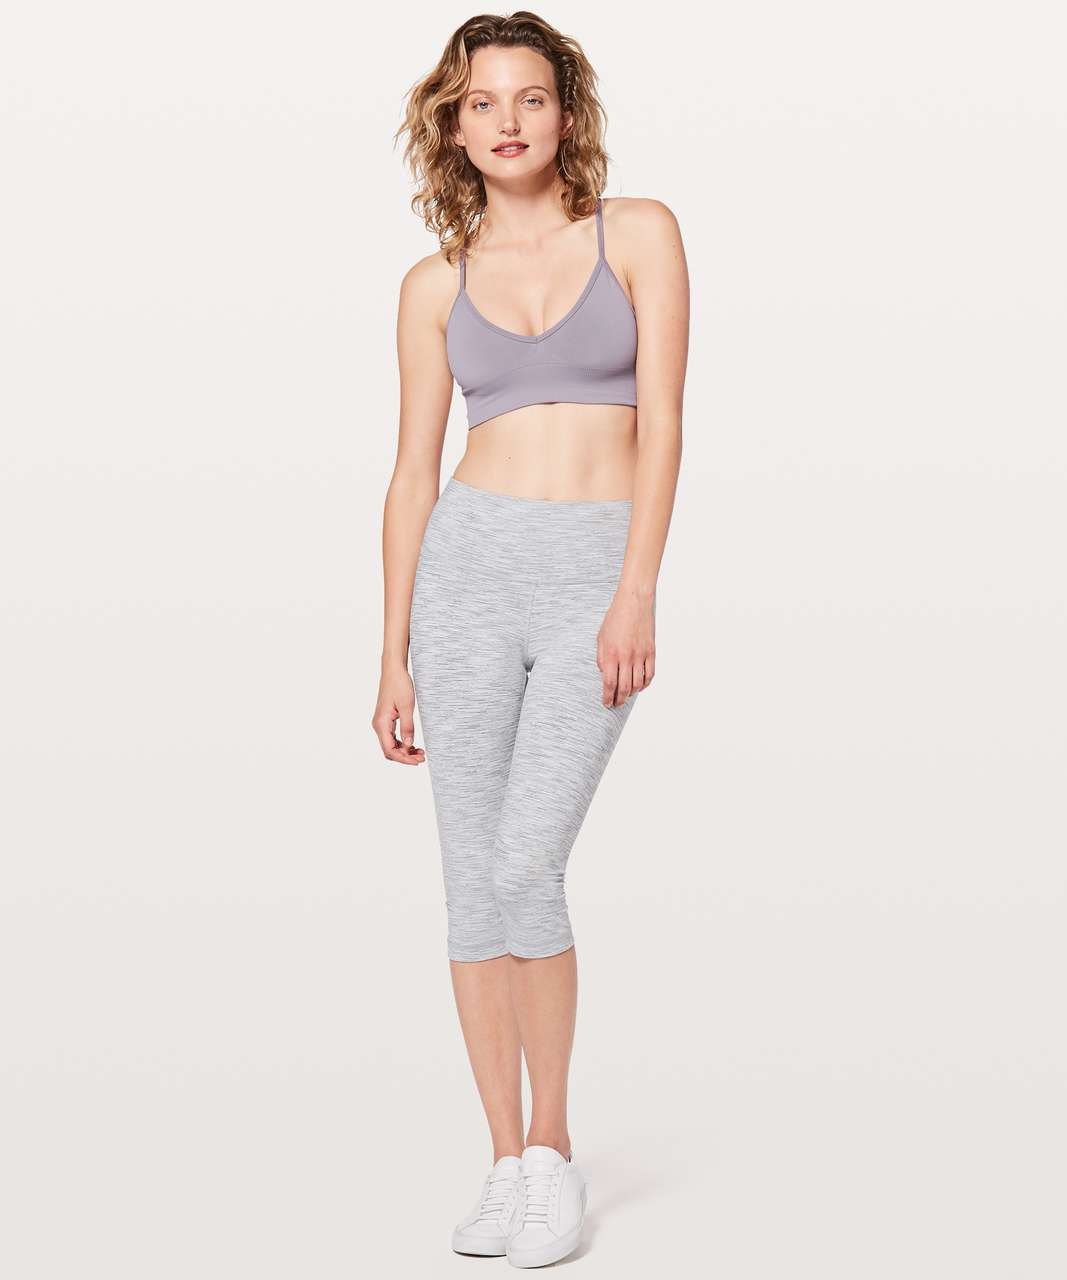 Lululemon Awakening Bra - Dusty Dawn